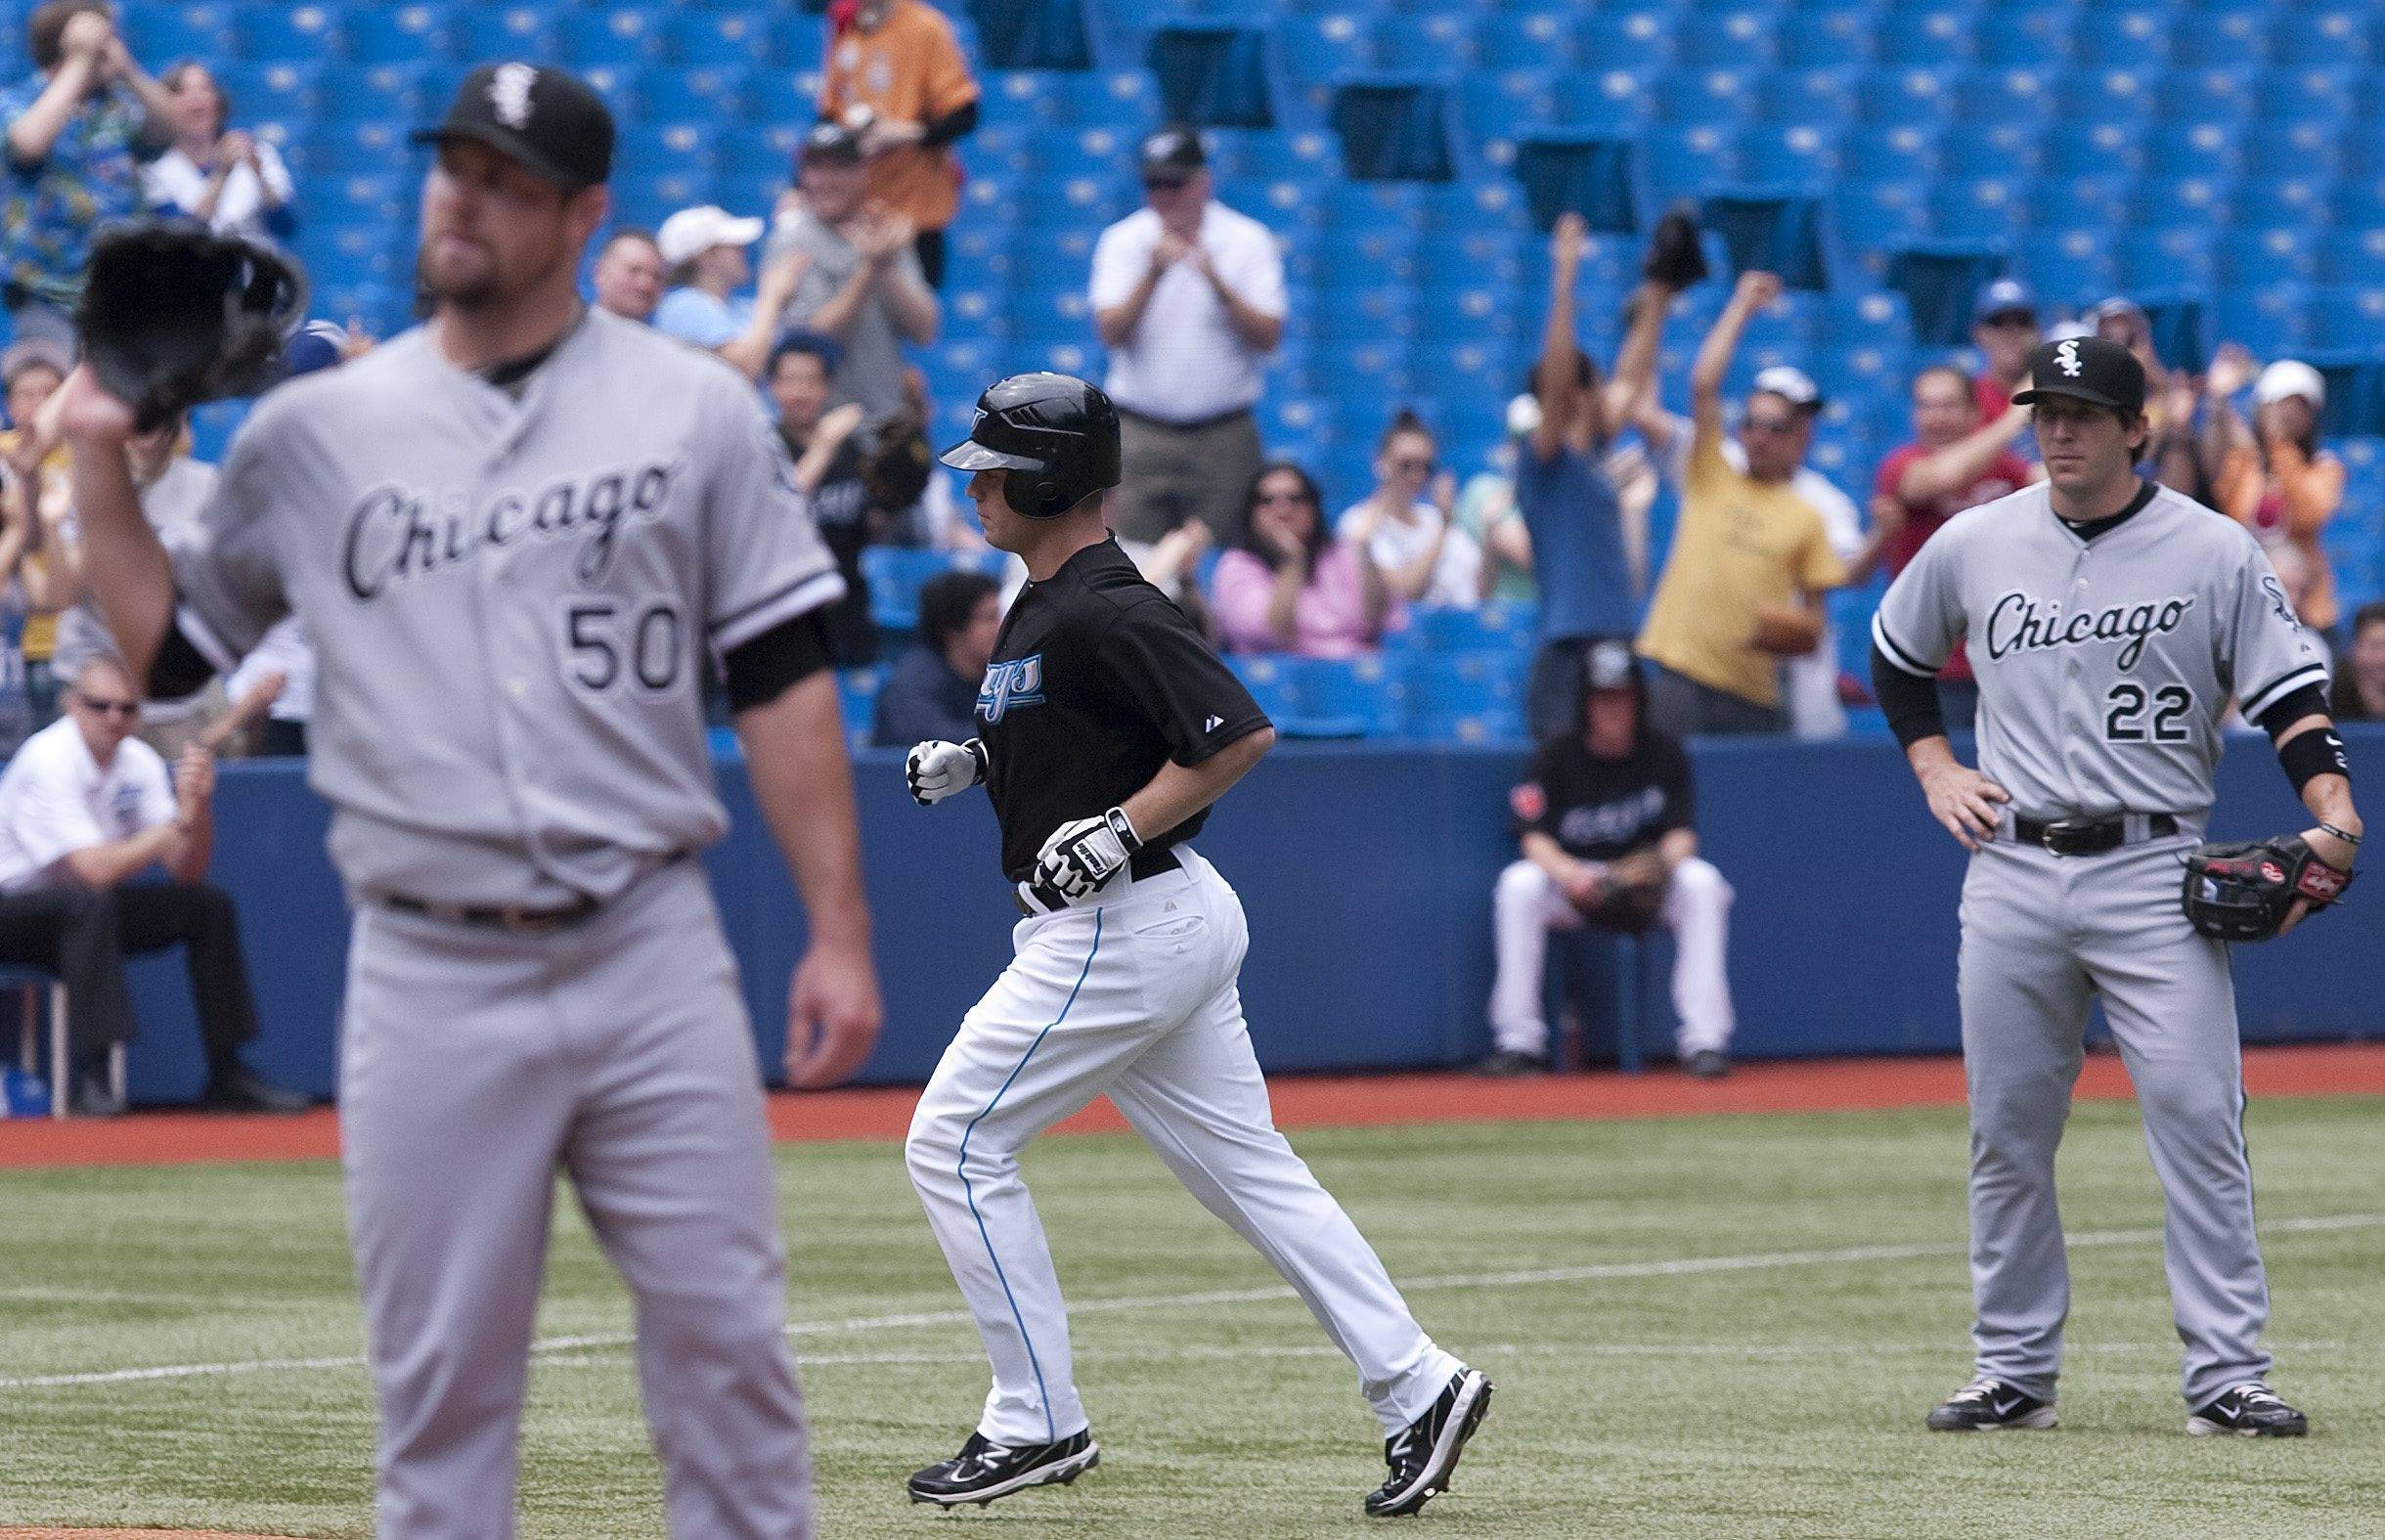 Aaron Hill, center, rounds third base after hitting a grand slam off  White Sox starting pitcher John Danks, left, as third baseman Brent Morel, right,looks on during the first inning Sunday in Toronto.